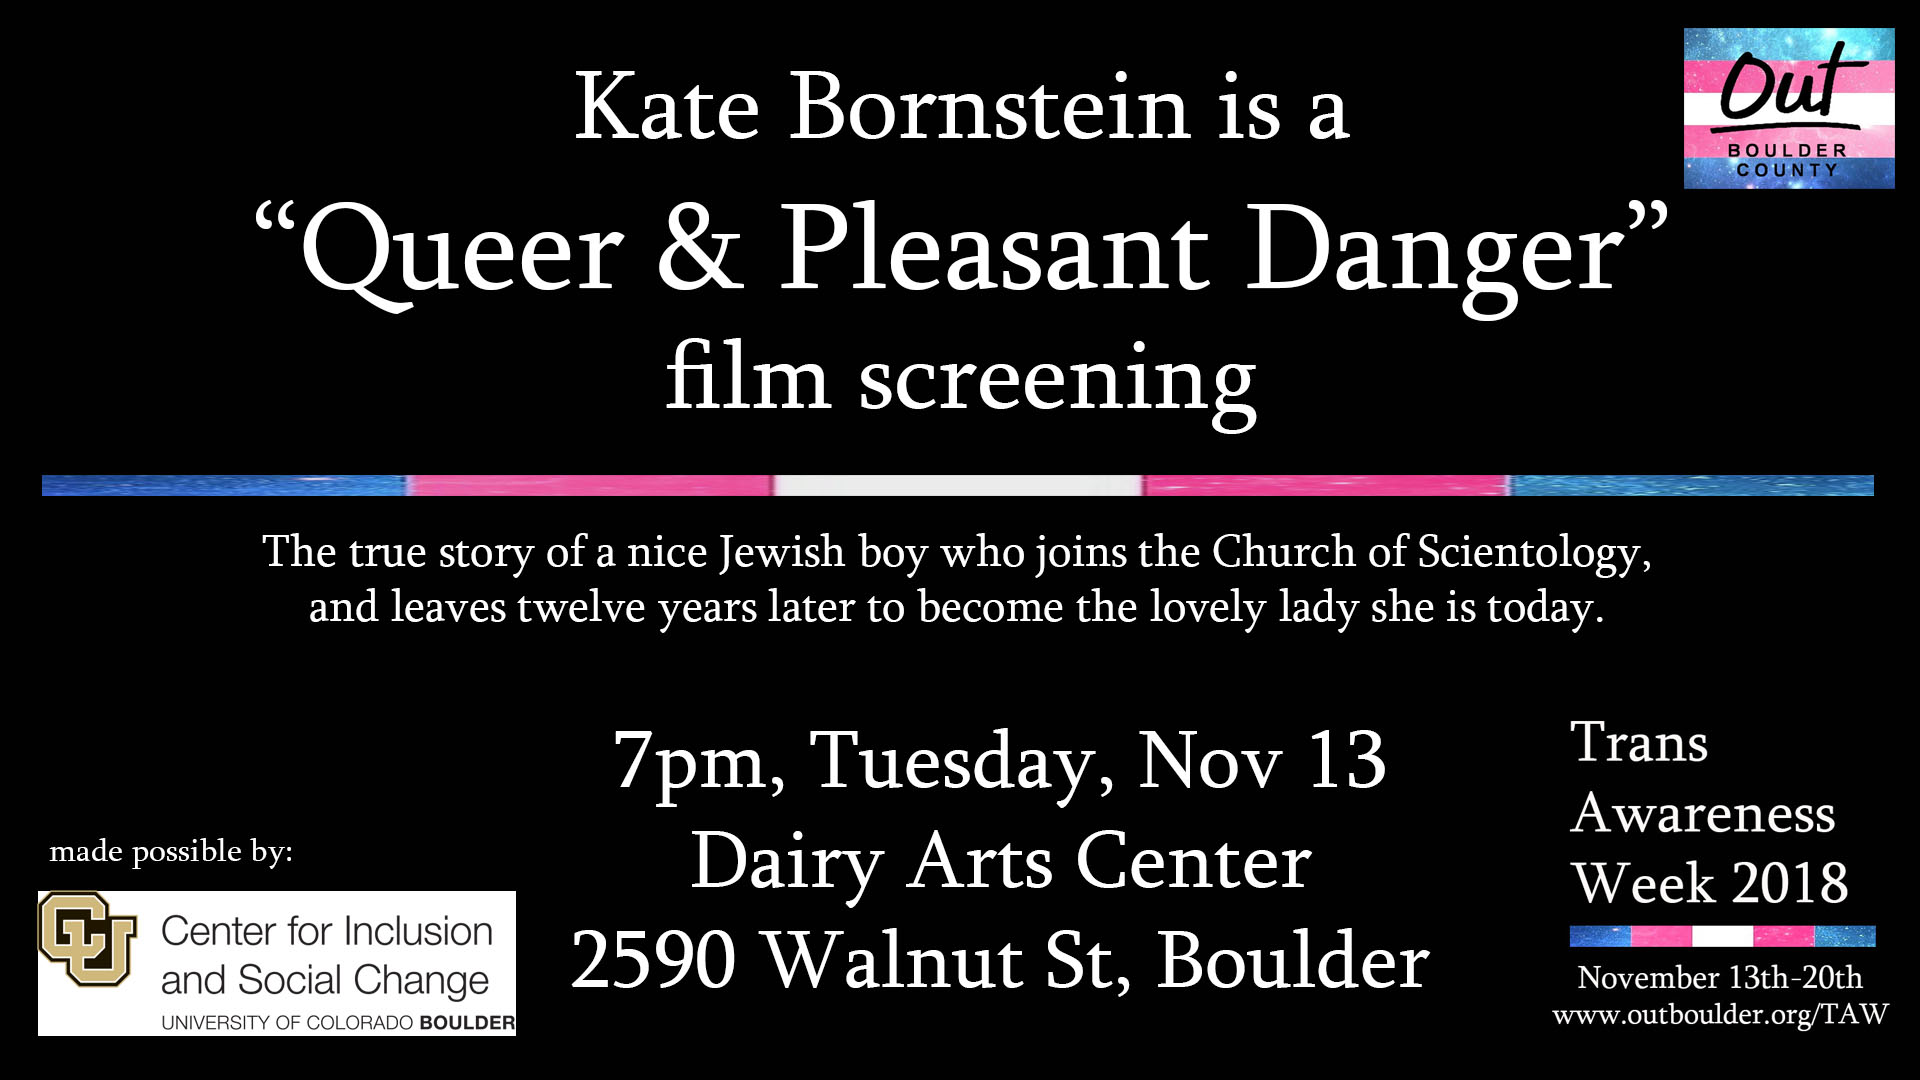 """Kate Bornstein  is a """"Queer and Pleasant Danger"""" film screening at the Dairy Arts Center, Boedecker Theater. For decades, performance artist and writer Kate Bornstein has been exploding binaries and deconstructing gender and, her own identity. Trans-dyke. Reluctant polyamorist. Sadomasochist. Recovering Scientologist. Pioneering Gender Outlaw. Kate Bornstein Is a Queer and Pleasant Danger presents her on her latest tour with rollicking public performances and painful personal revelations as it bears witness to Kate as a trailblazing artist, theorist, and activist who inhabits a space between male and female with wit, style, and astonishing candor. By turns meditative and playful, the film invites us on a thought-provoking journey through Kate's world in seeking answers to some of life's biggest questions. (Same Feder, 2014, USA, 1:12, NR)   Facebook Event Info"""